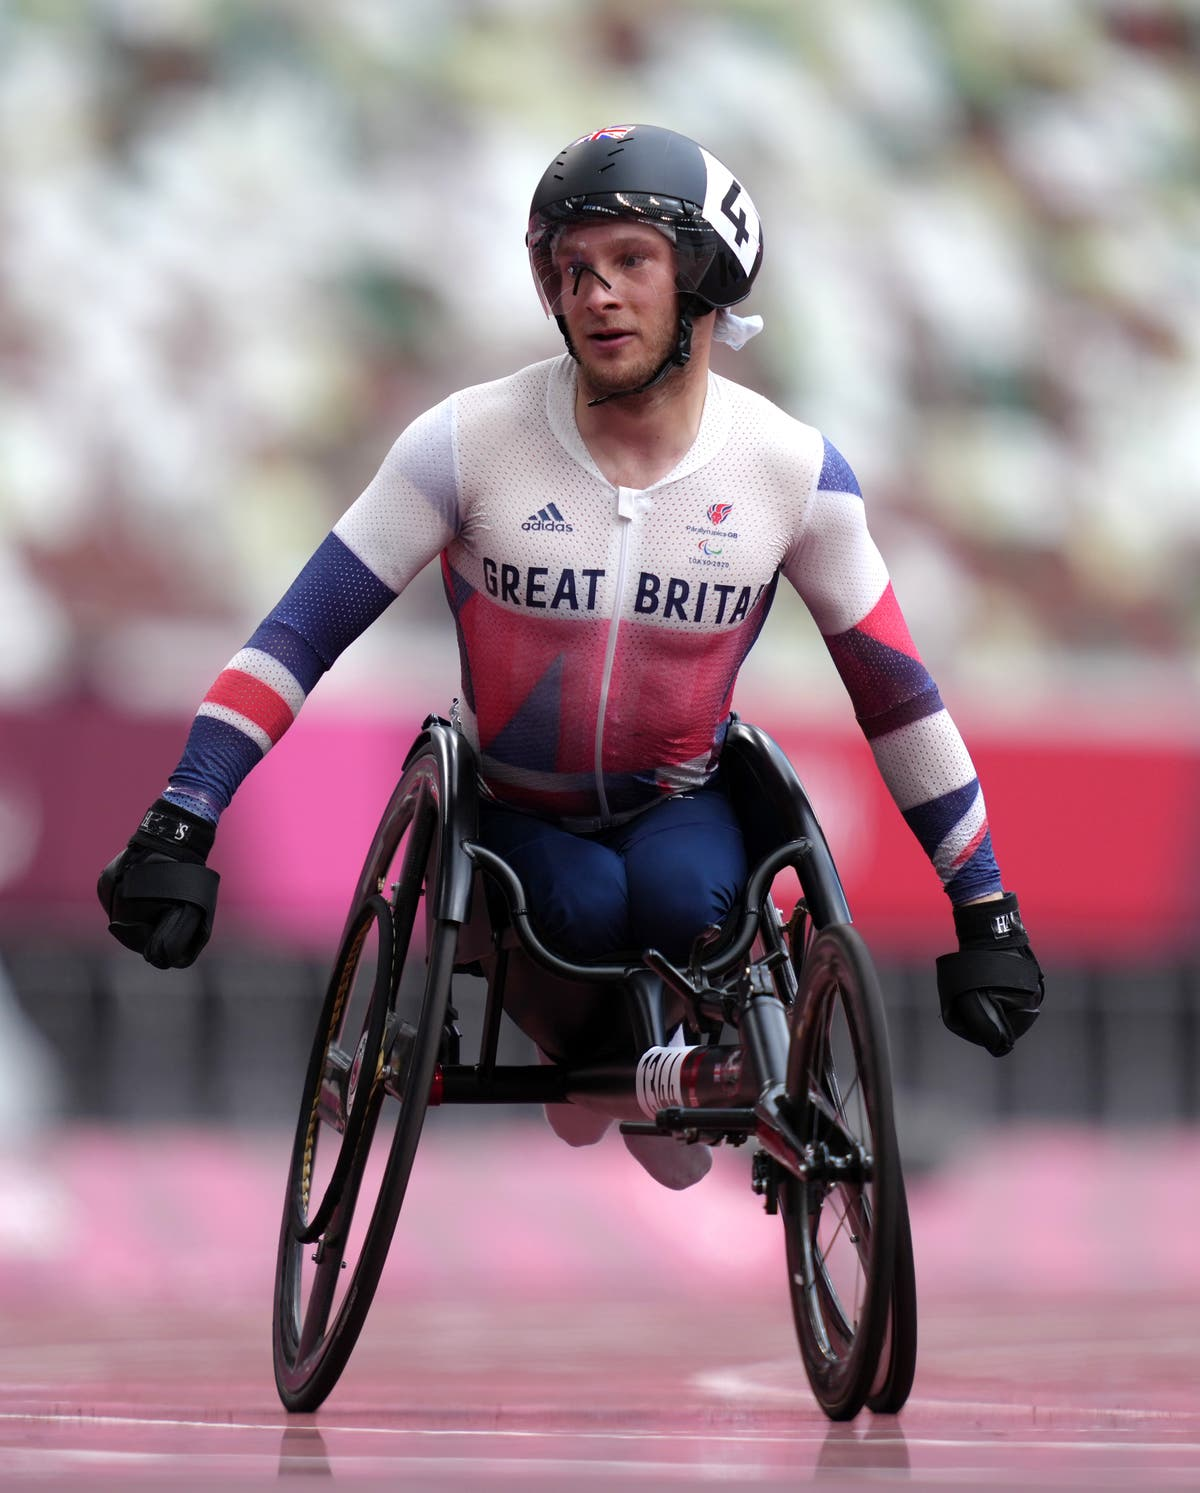 Andrew Small claims gold for Britain in T33 100m final